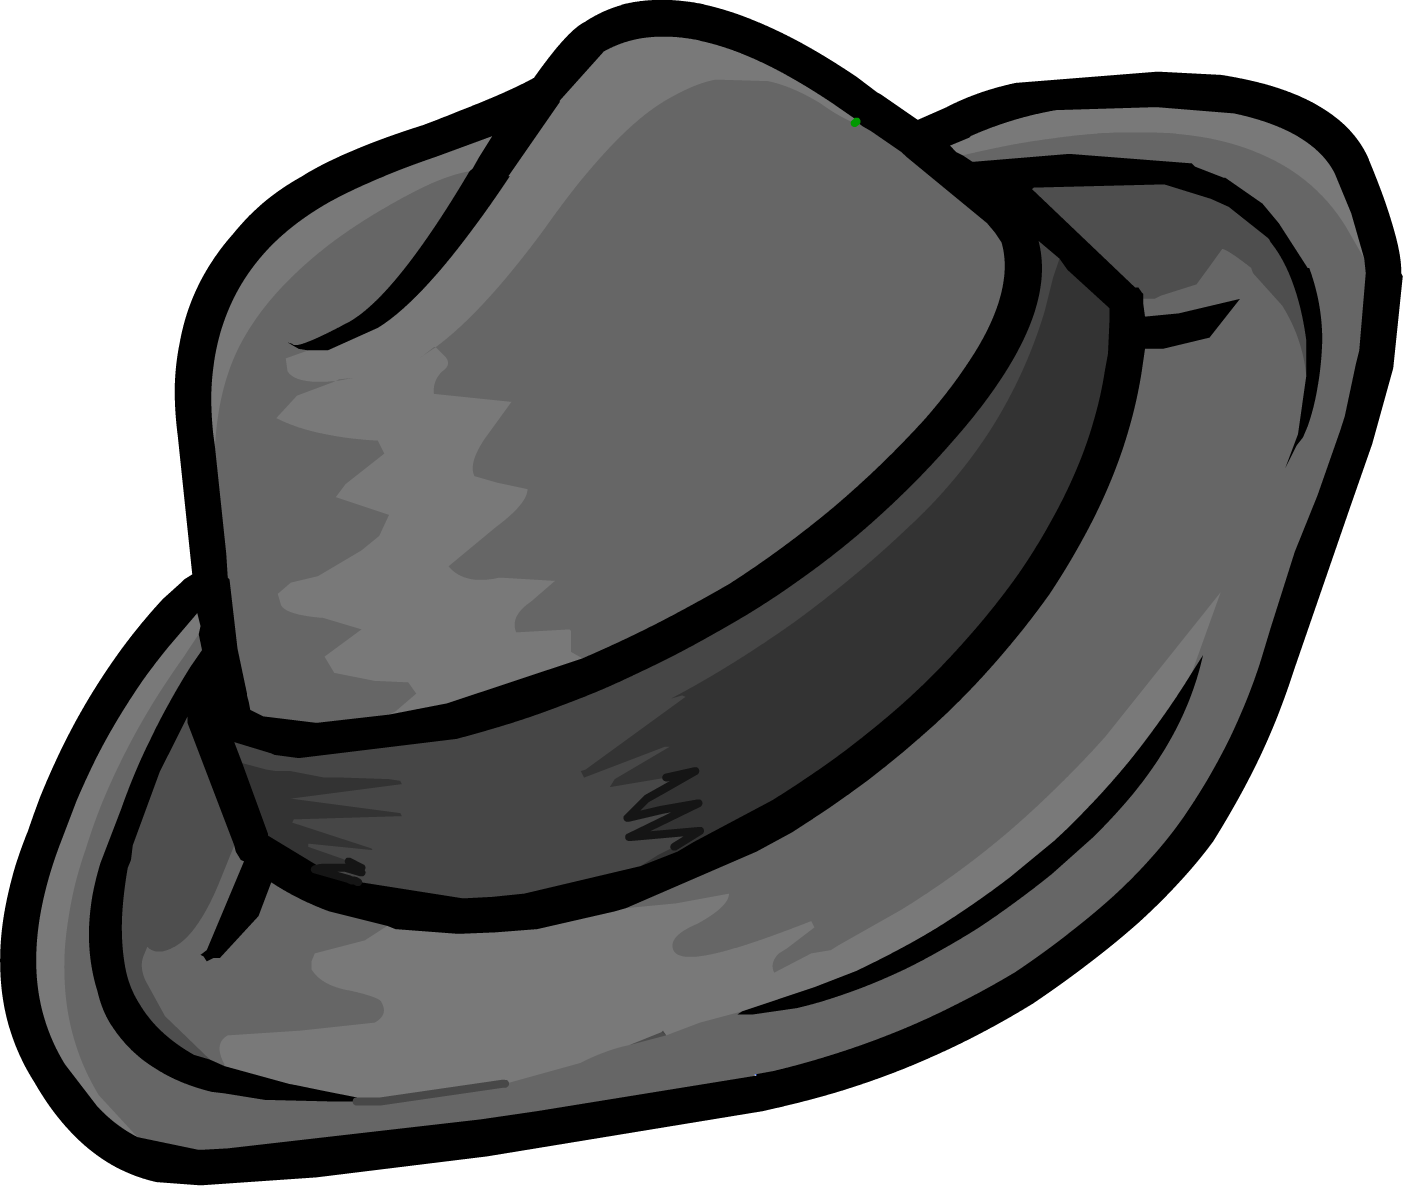 Fedora clipart png. Image gray club penguin